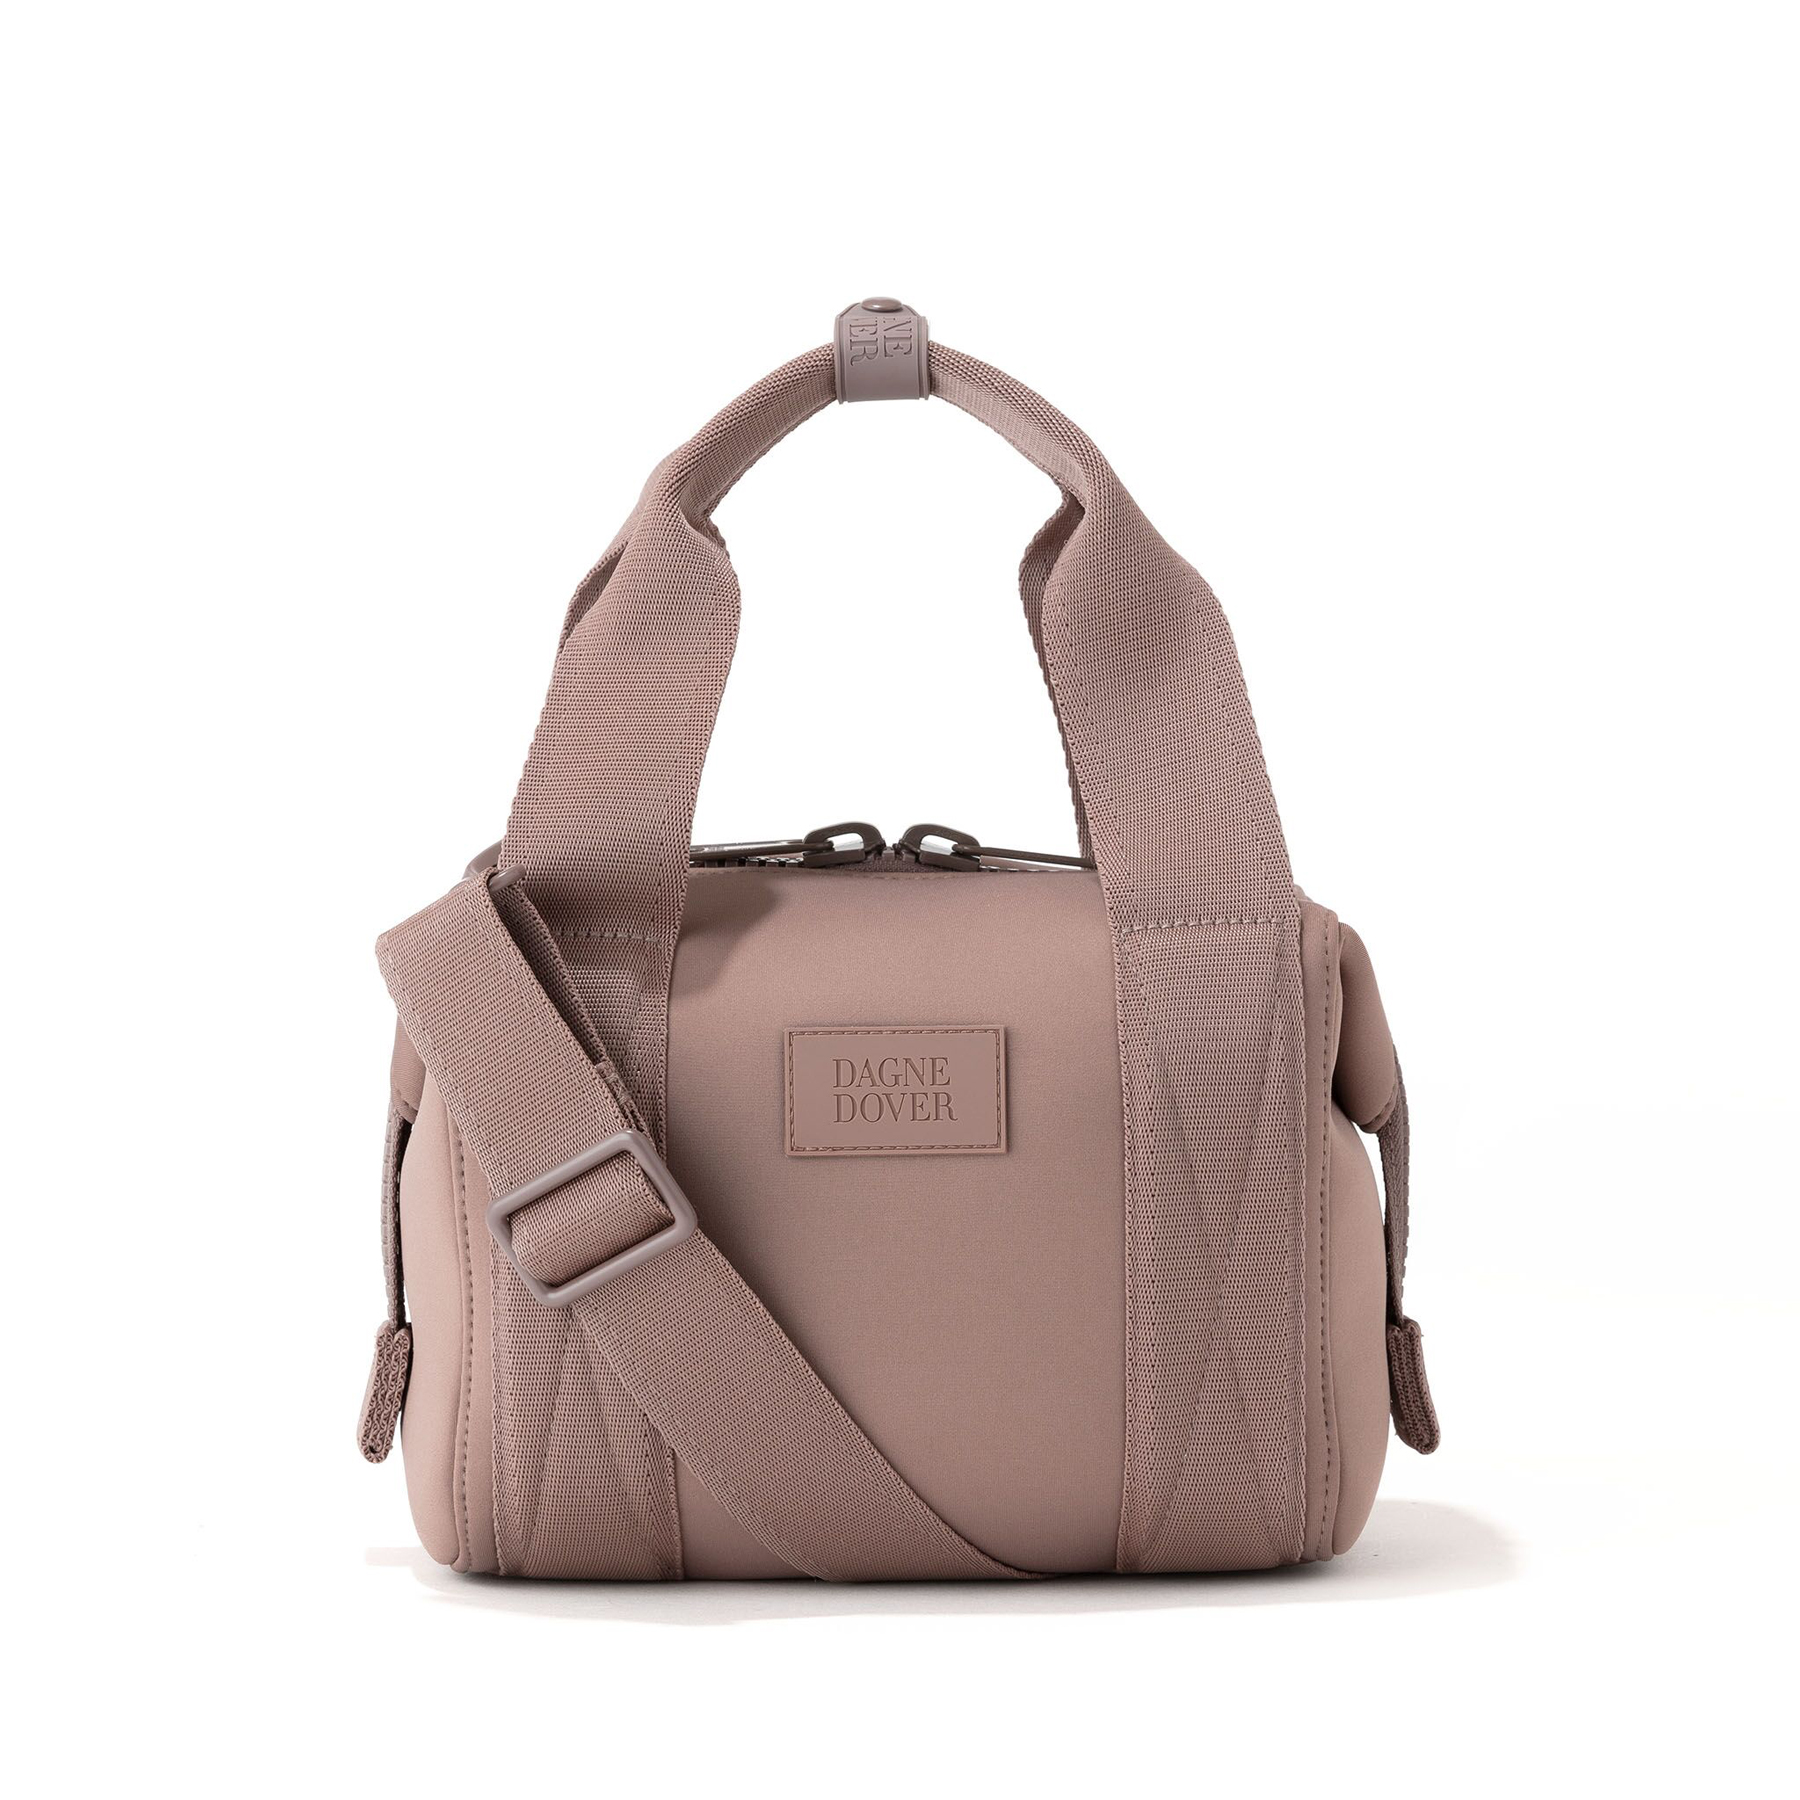 Mother's Day gifts ideas - Dagne Dover Landon Carryall